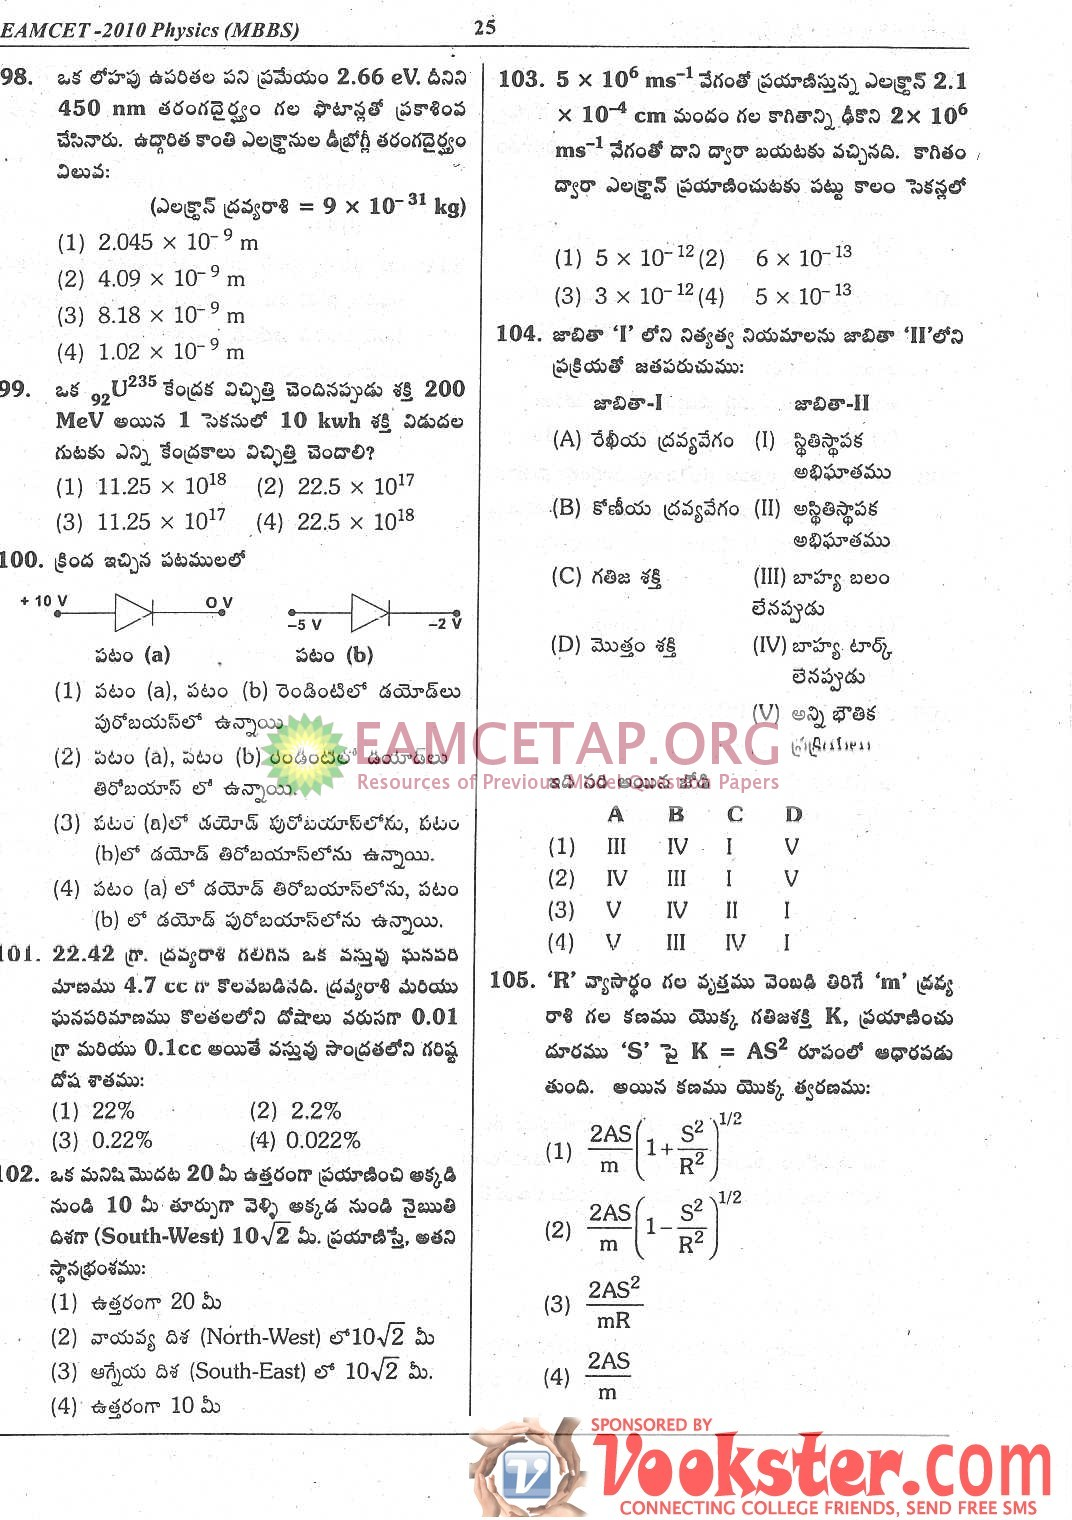 physics 35 questions essay This was a chemistry/physics essay i did this academic area mostly sent me to boredomville but the subject of this essay was very interesting for me, and i hope all its readers find it interesting as well physics is all around us from the laws of gravity to the acceleration of a car.